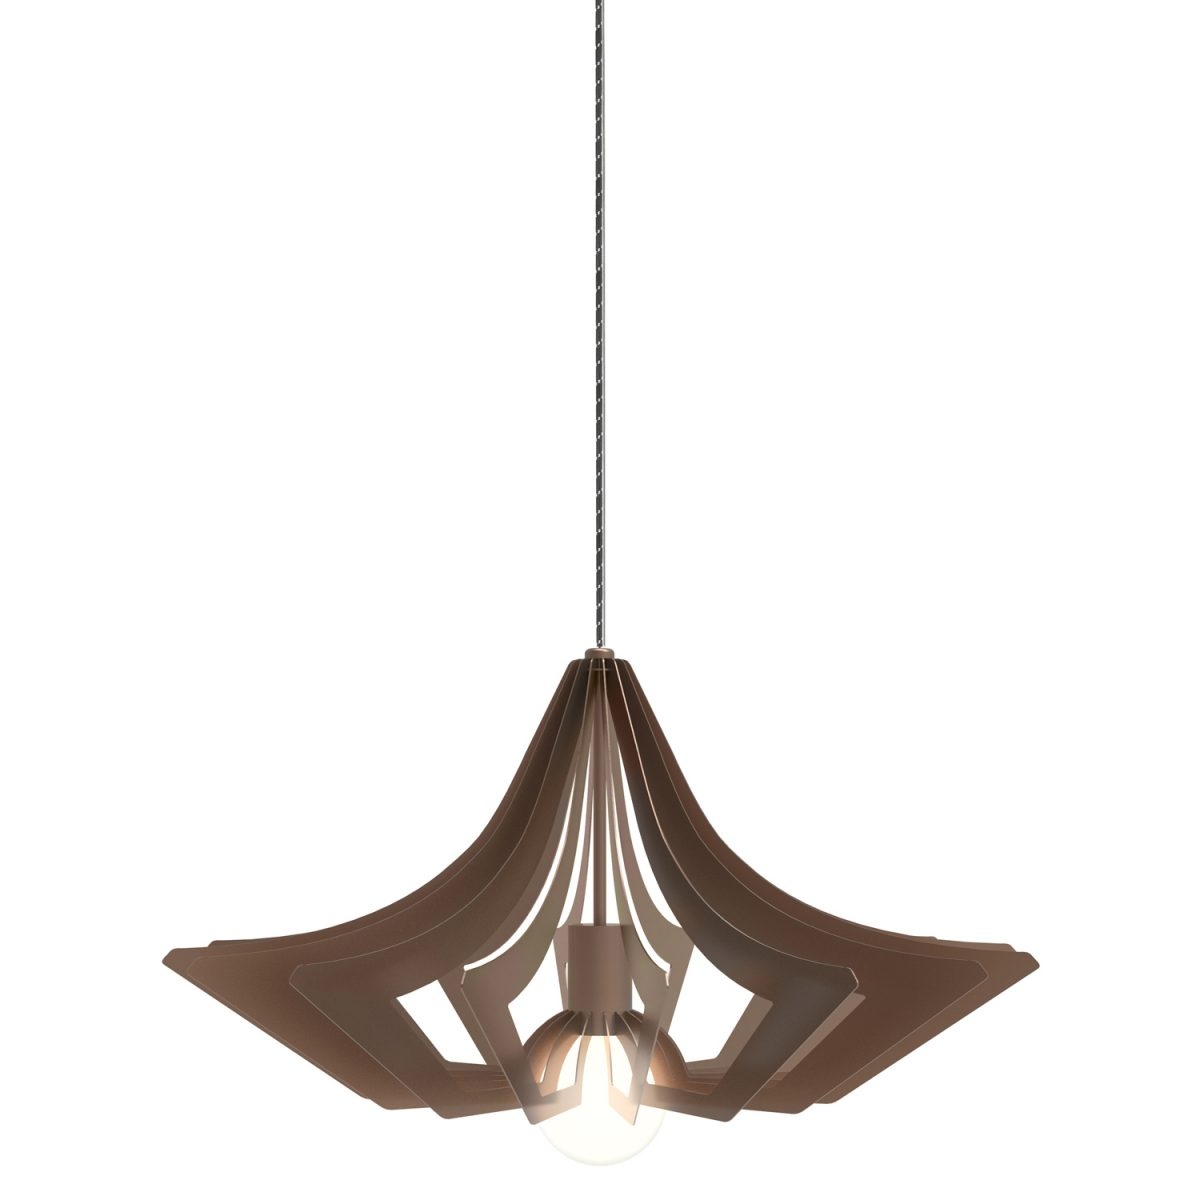 JSPR Beaudine II Bronze Opaque Dutch Design Verlichting